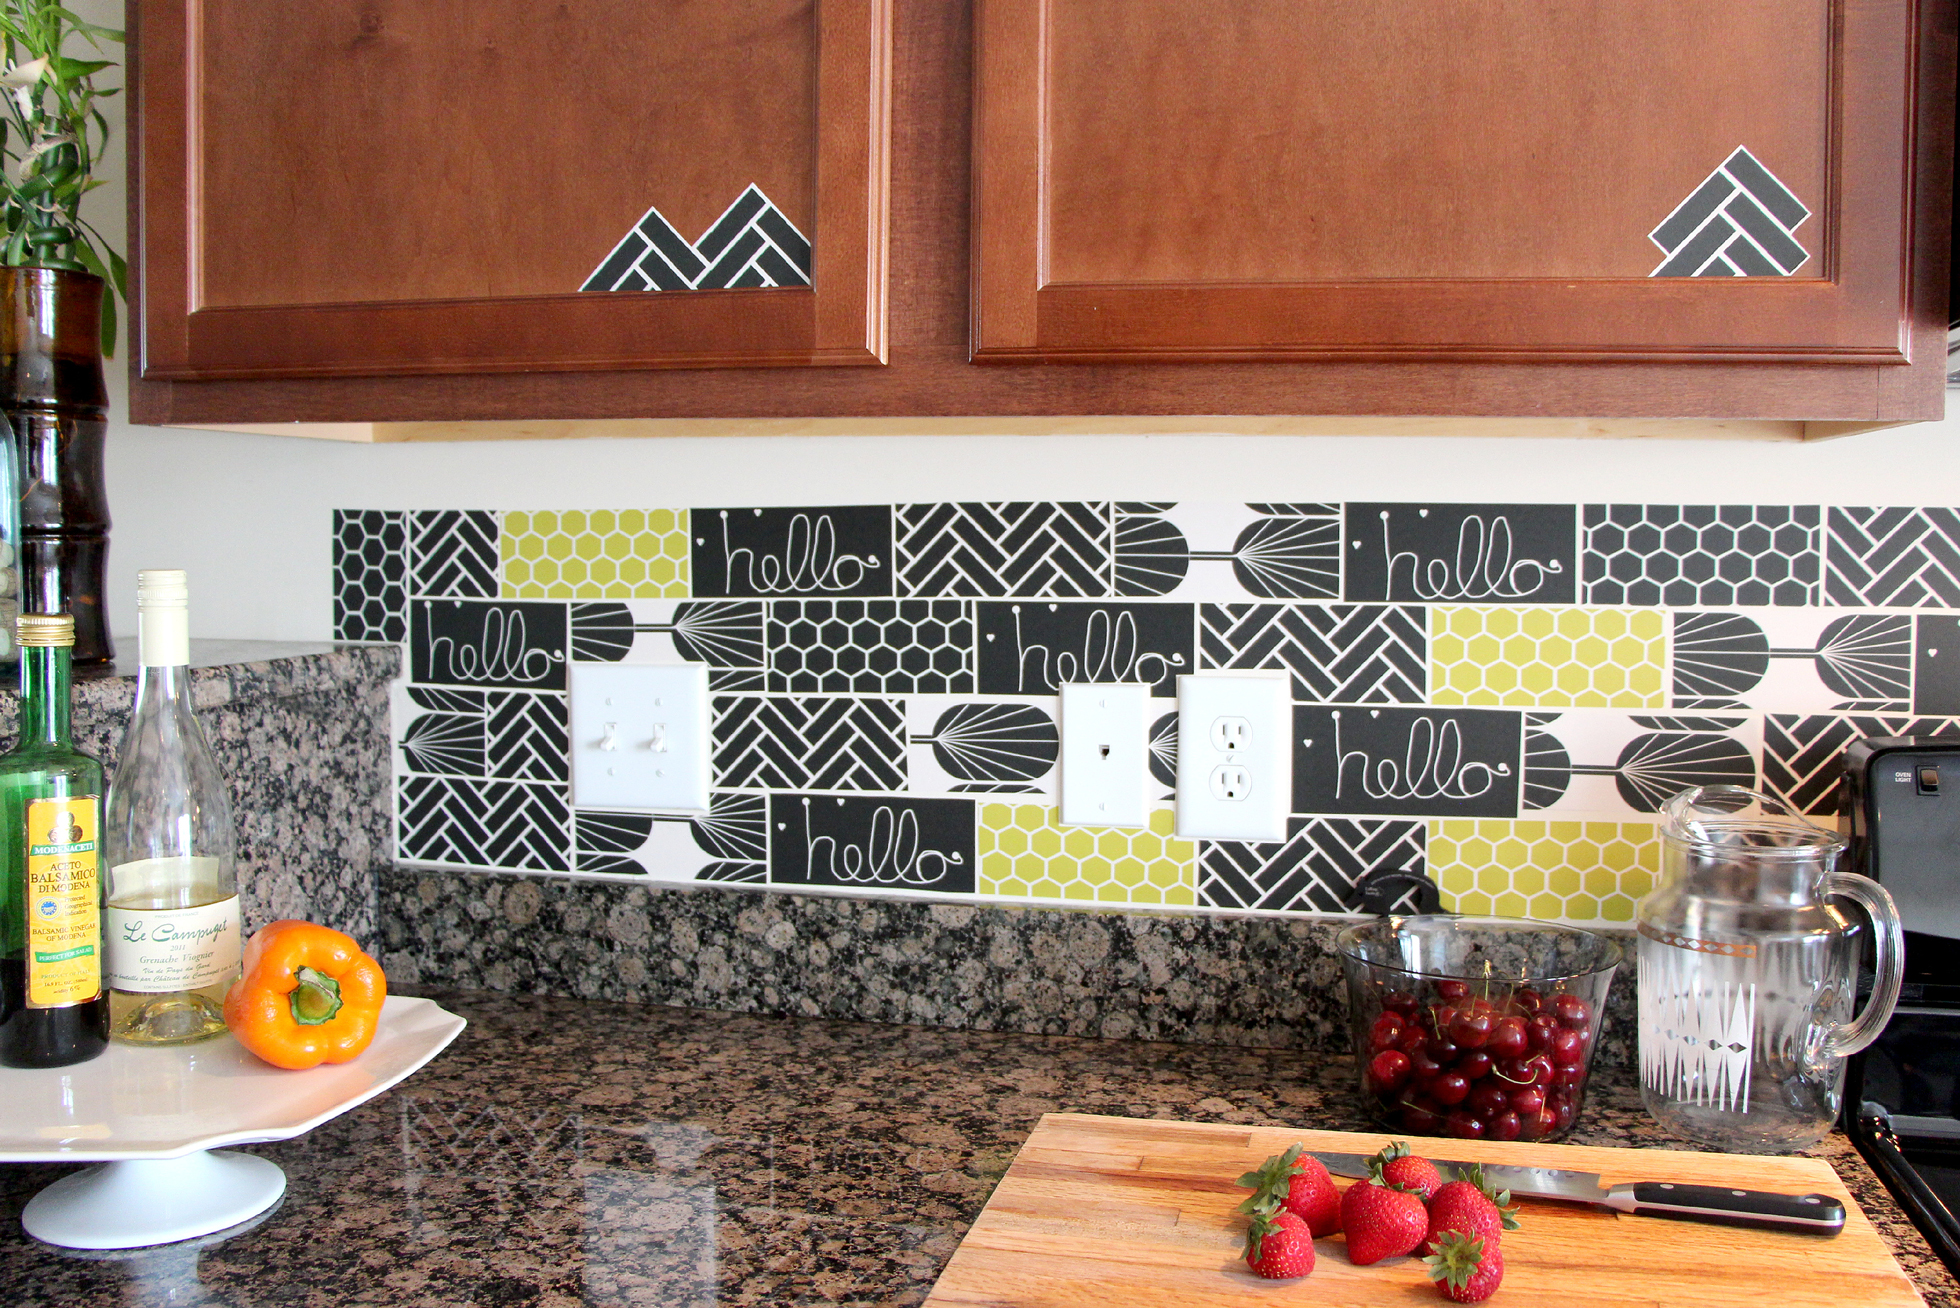 Black and green tile decals in a kitchen